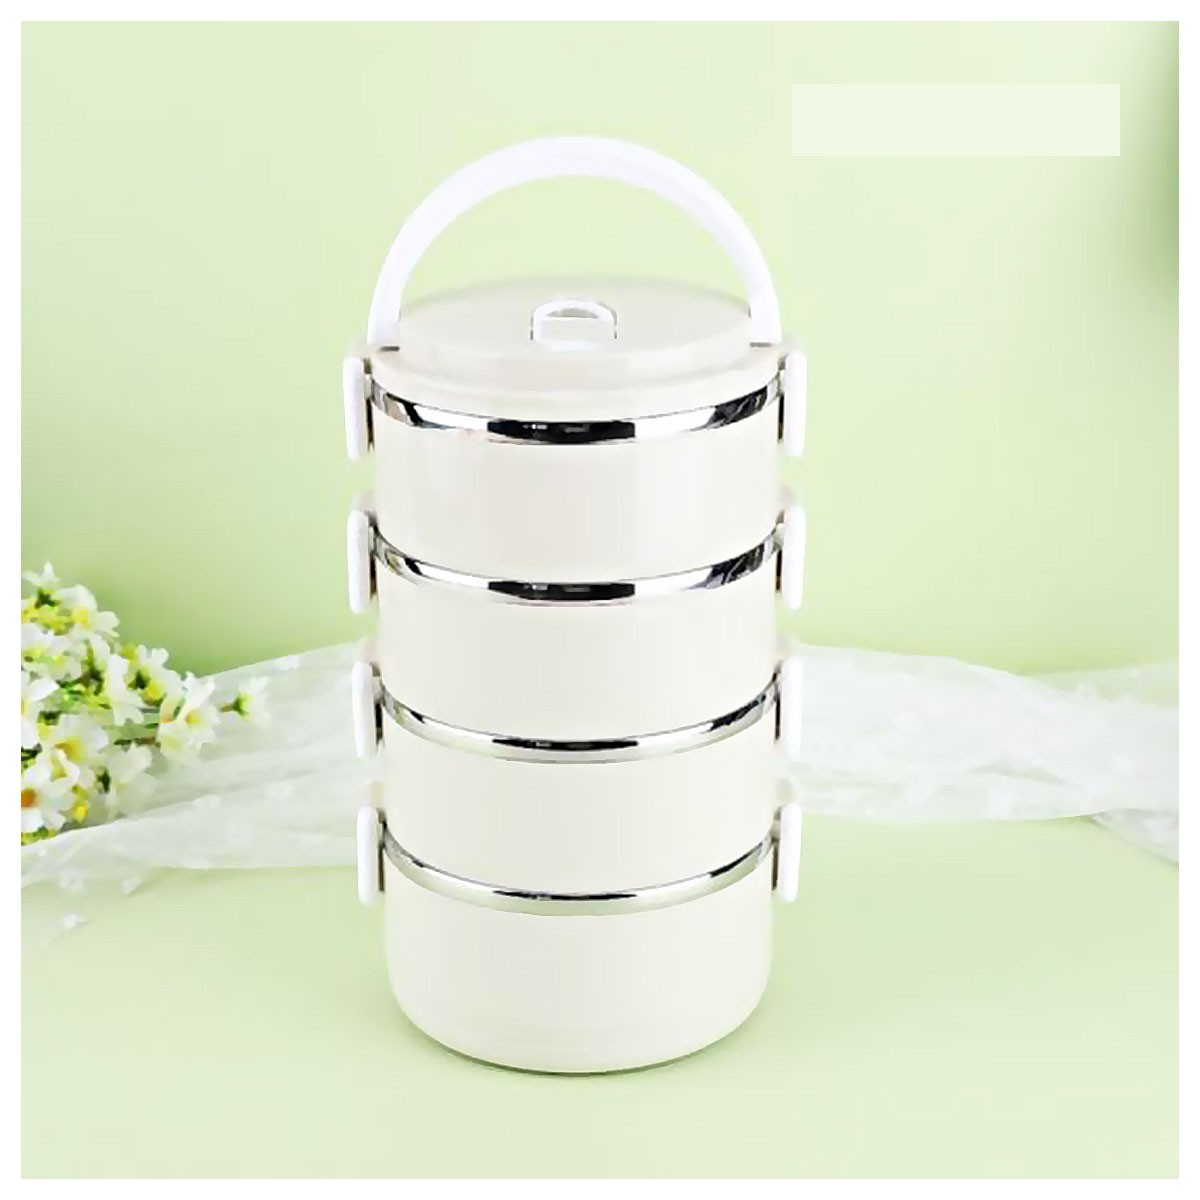 4 Layer Easy Portable Stainless Steel Office And School Lunch Box